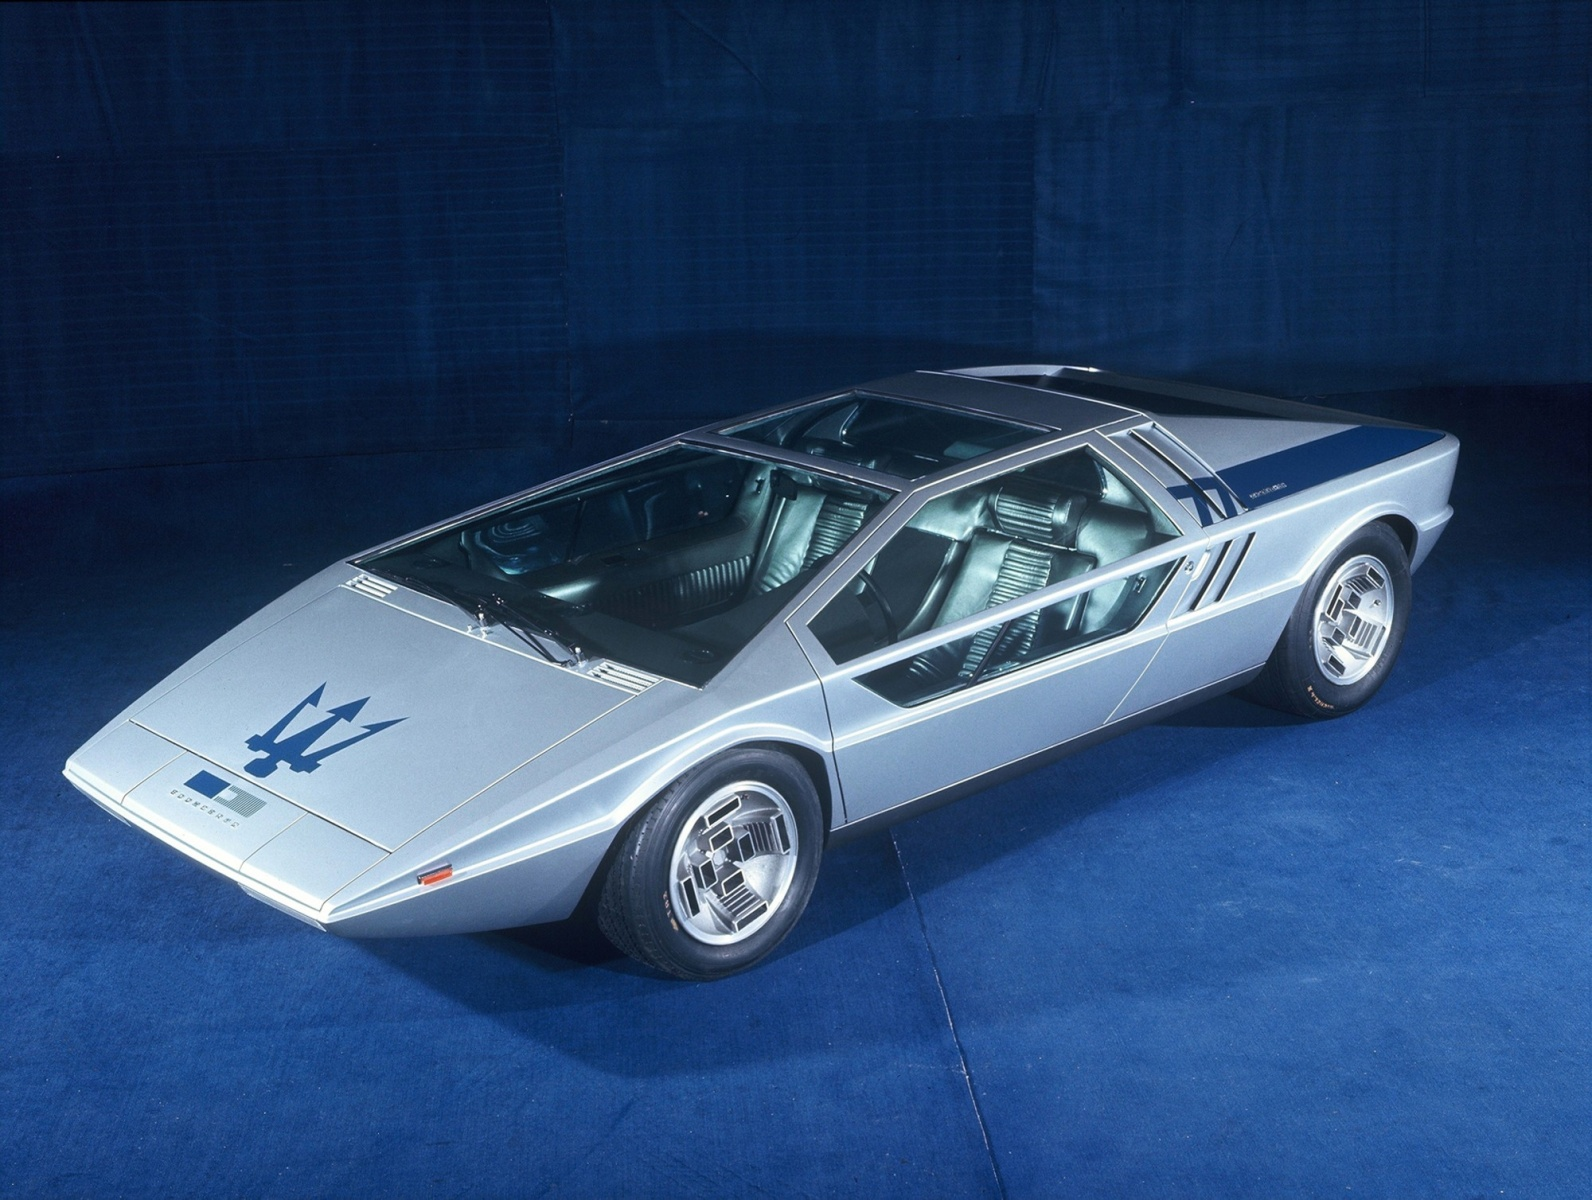 one-of-a-kind-maserati-boomerang-sold-for-376-million-less-than-initially-estimated_3